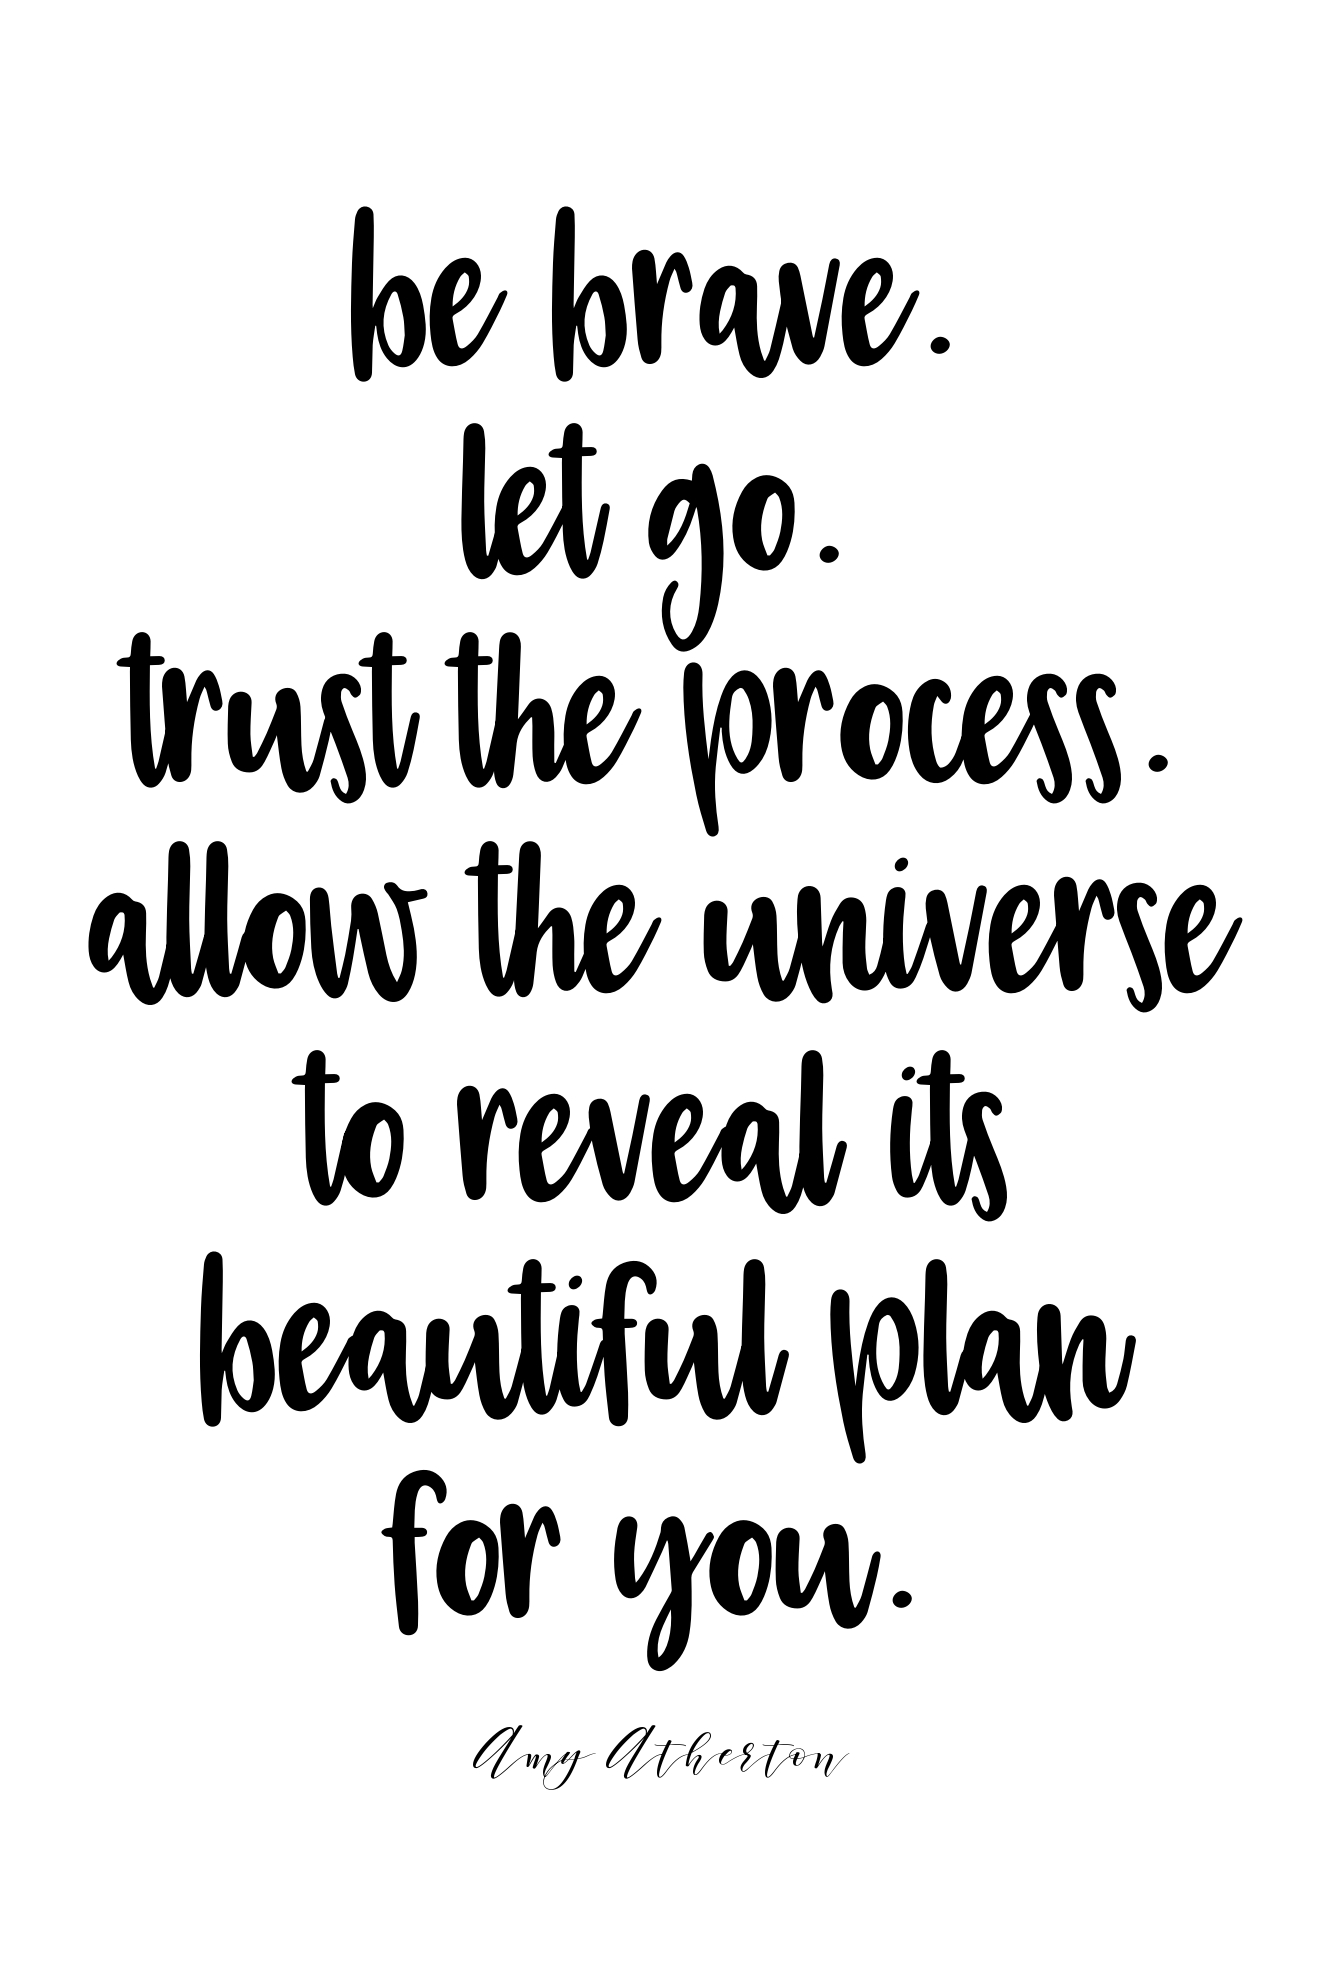 Be brave. Let go. Trust the process. Allow the universe to reveal its beautiful plan for you. @amybakeshealthy